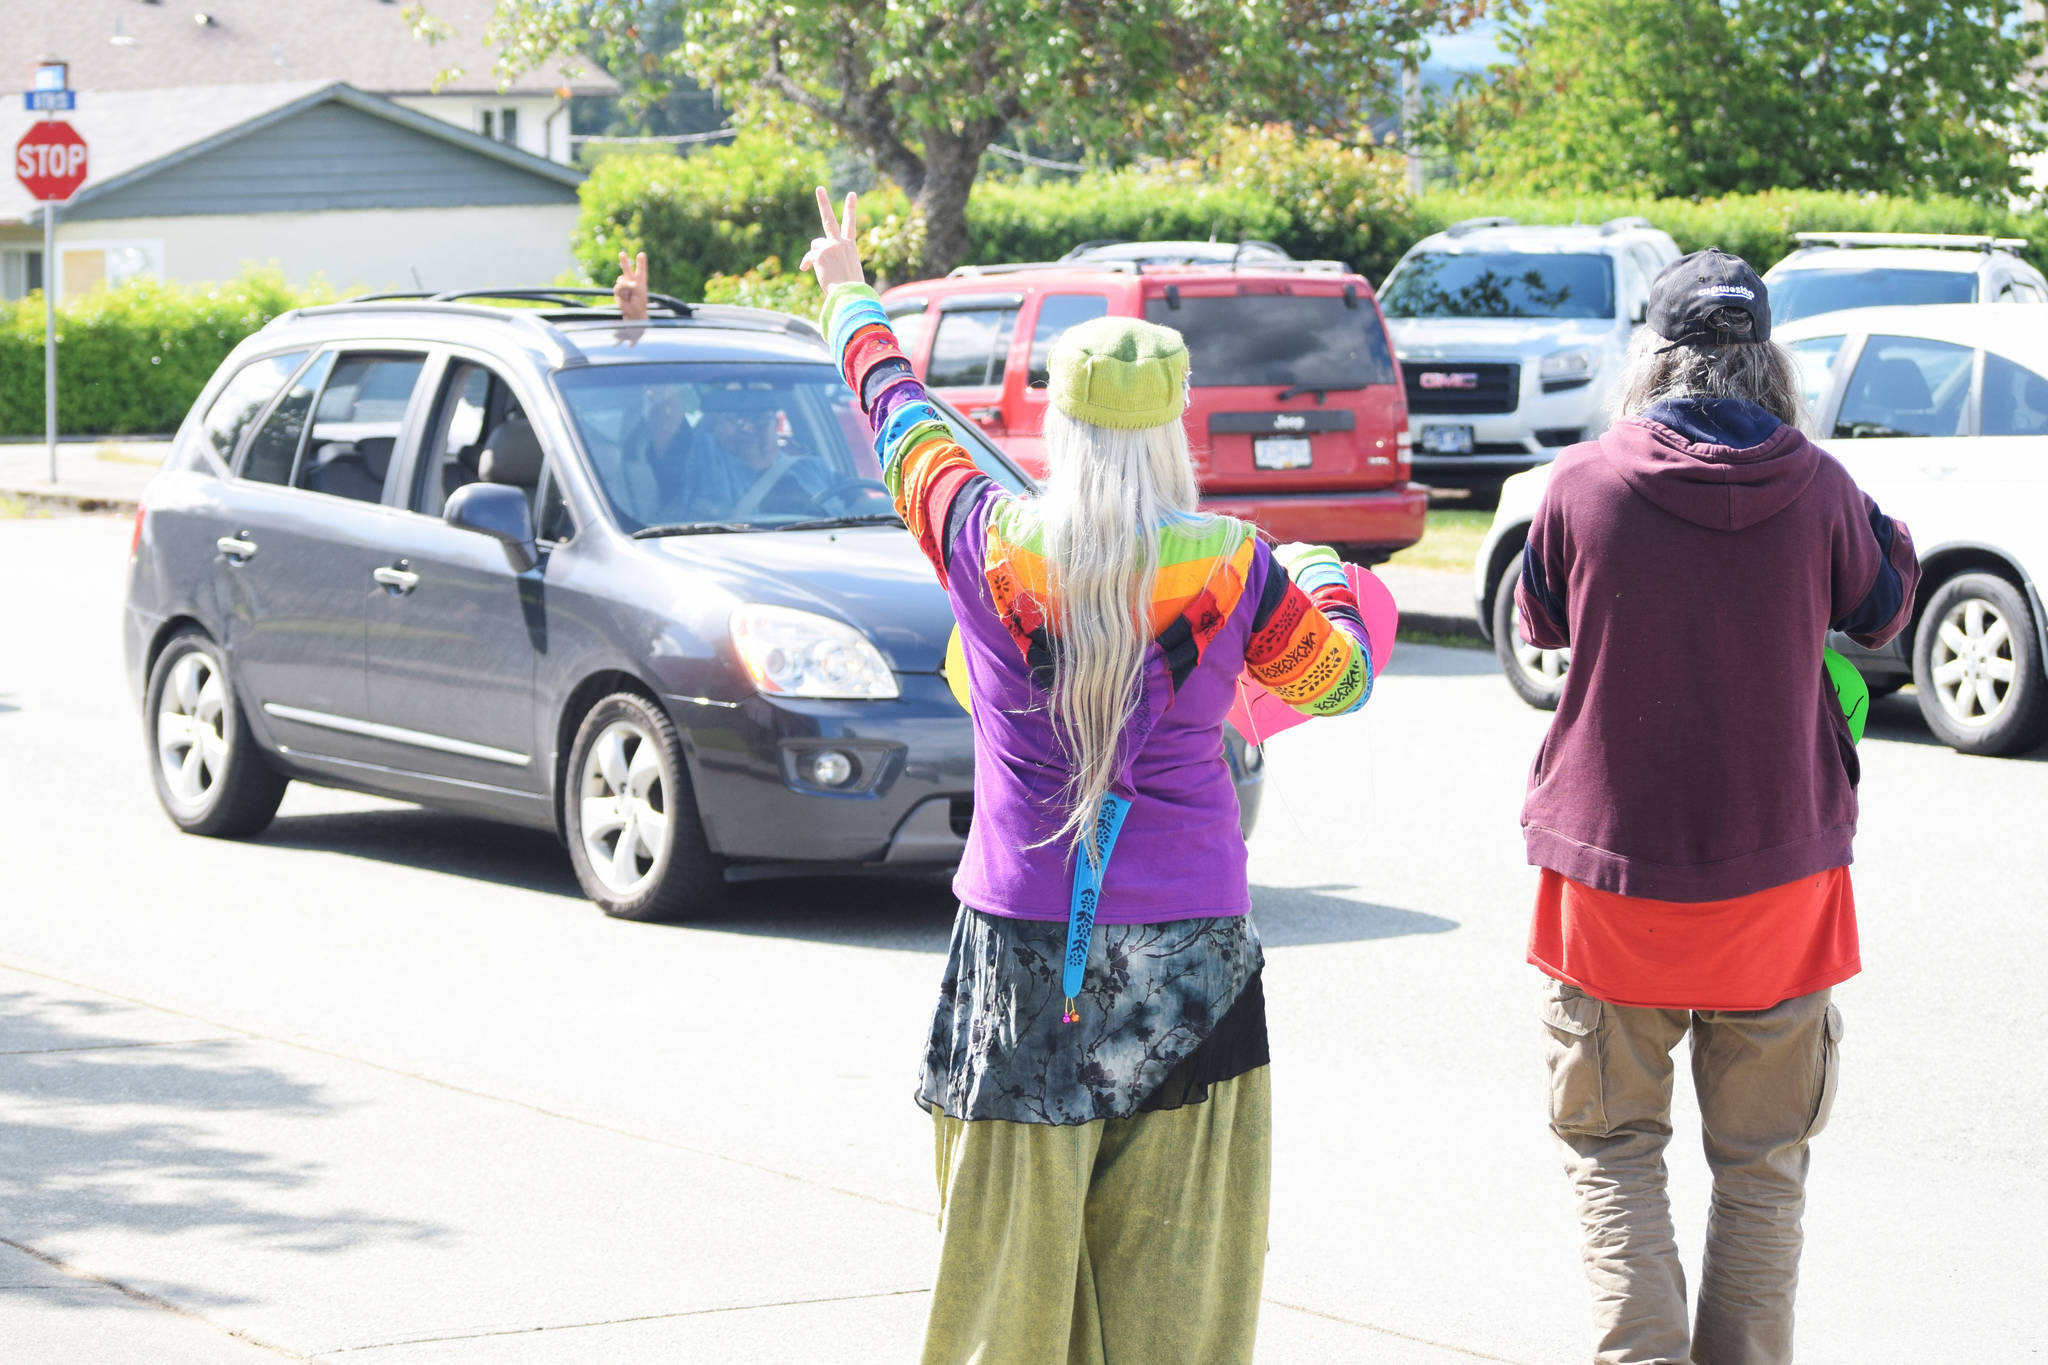 People in Port Alberni took part in a socially-distanced peaceful protest parade outside of the RCMP detachment on Thursday, June 4. (ELENA RARDON / ALBERNI VALLEY NEWS)